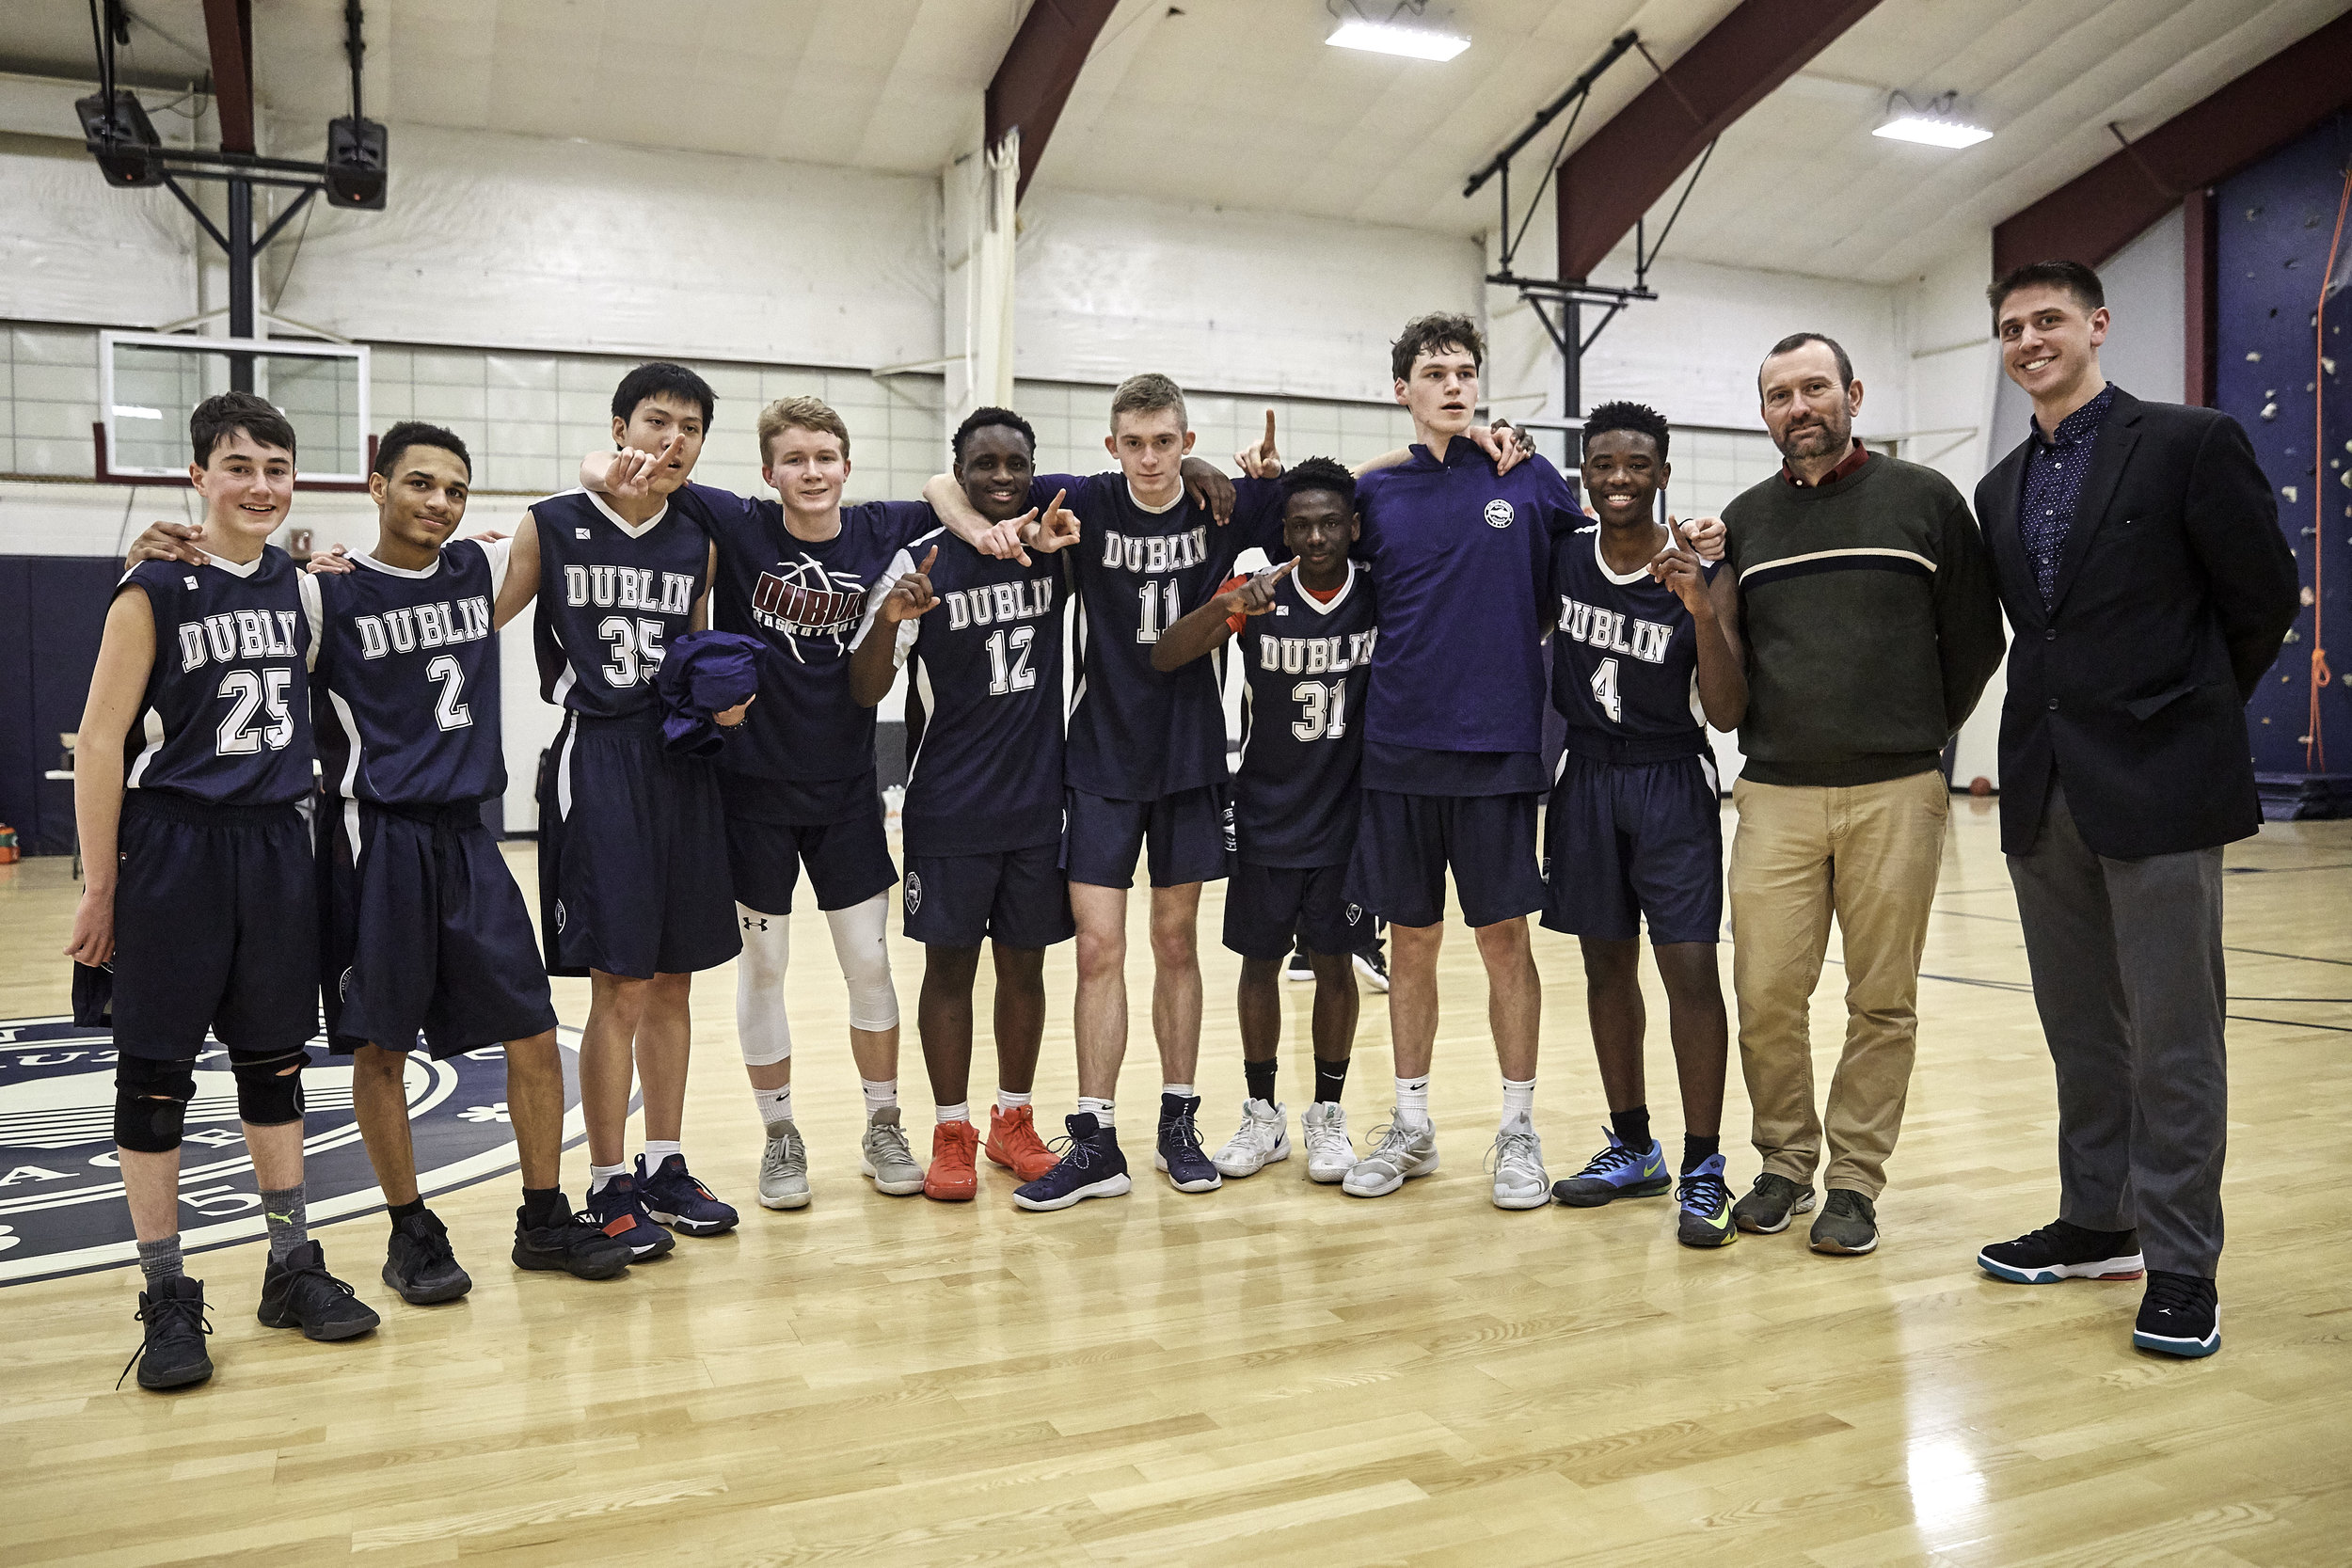 RVAL Championship Game - February 14, 2019 - 168727.jpg